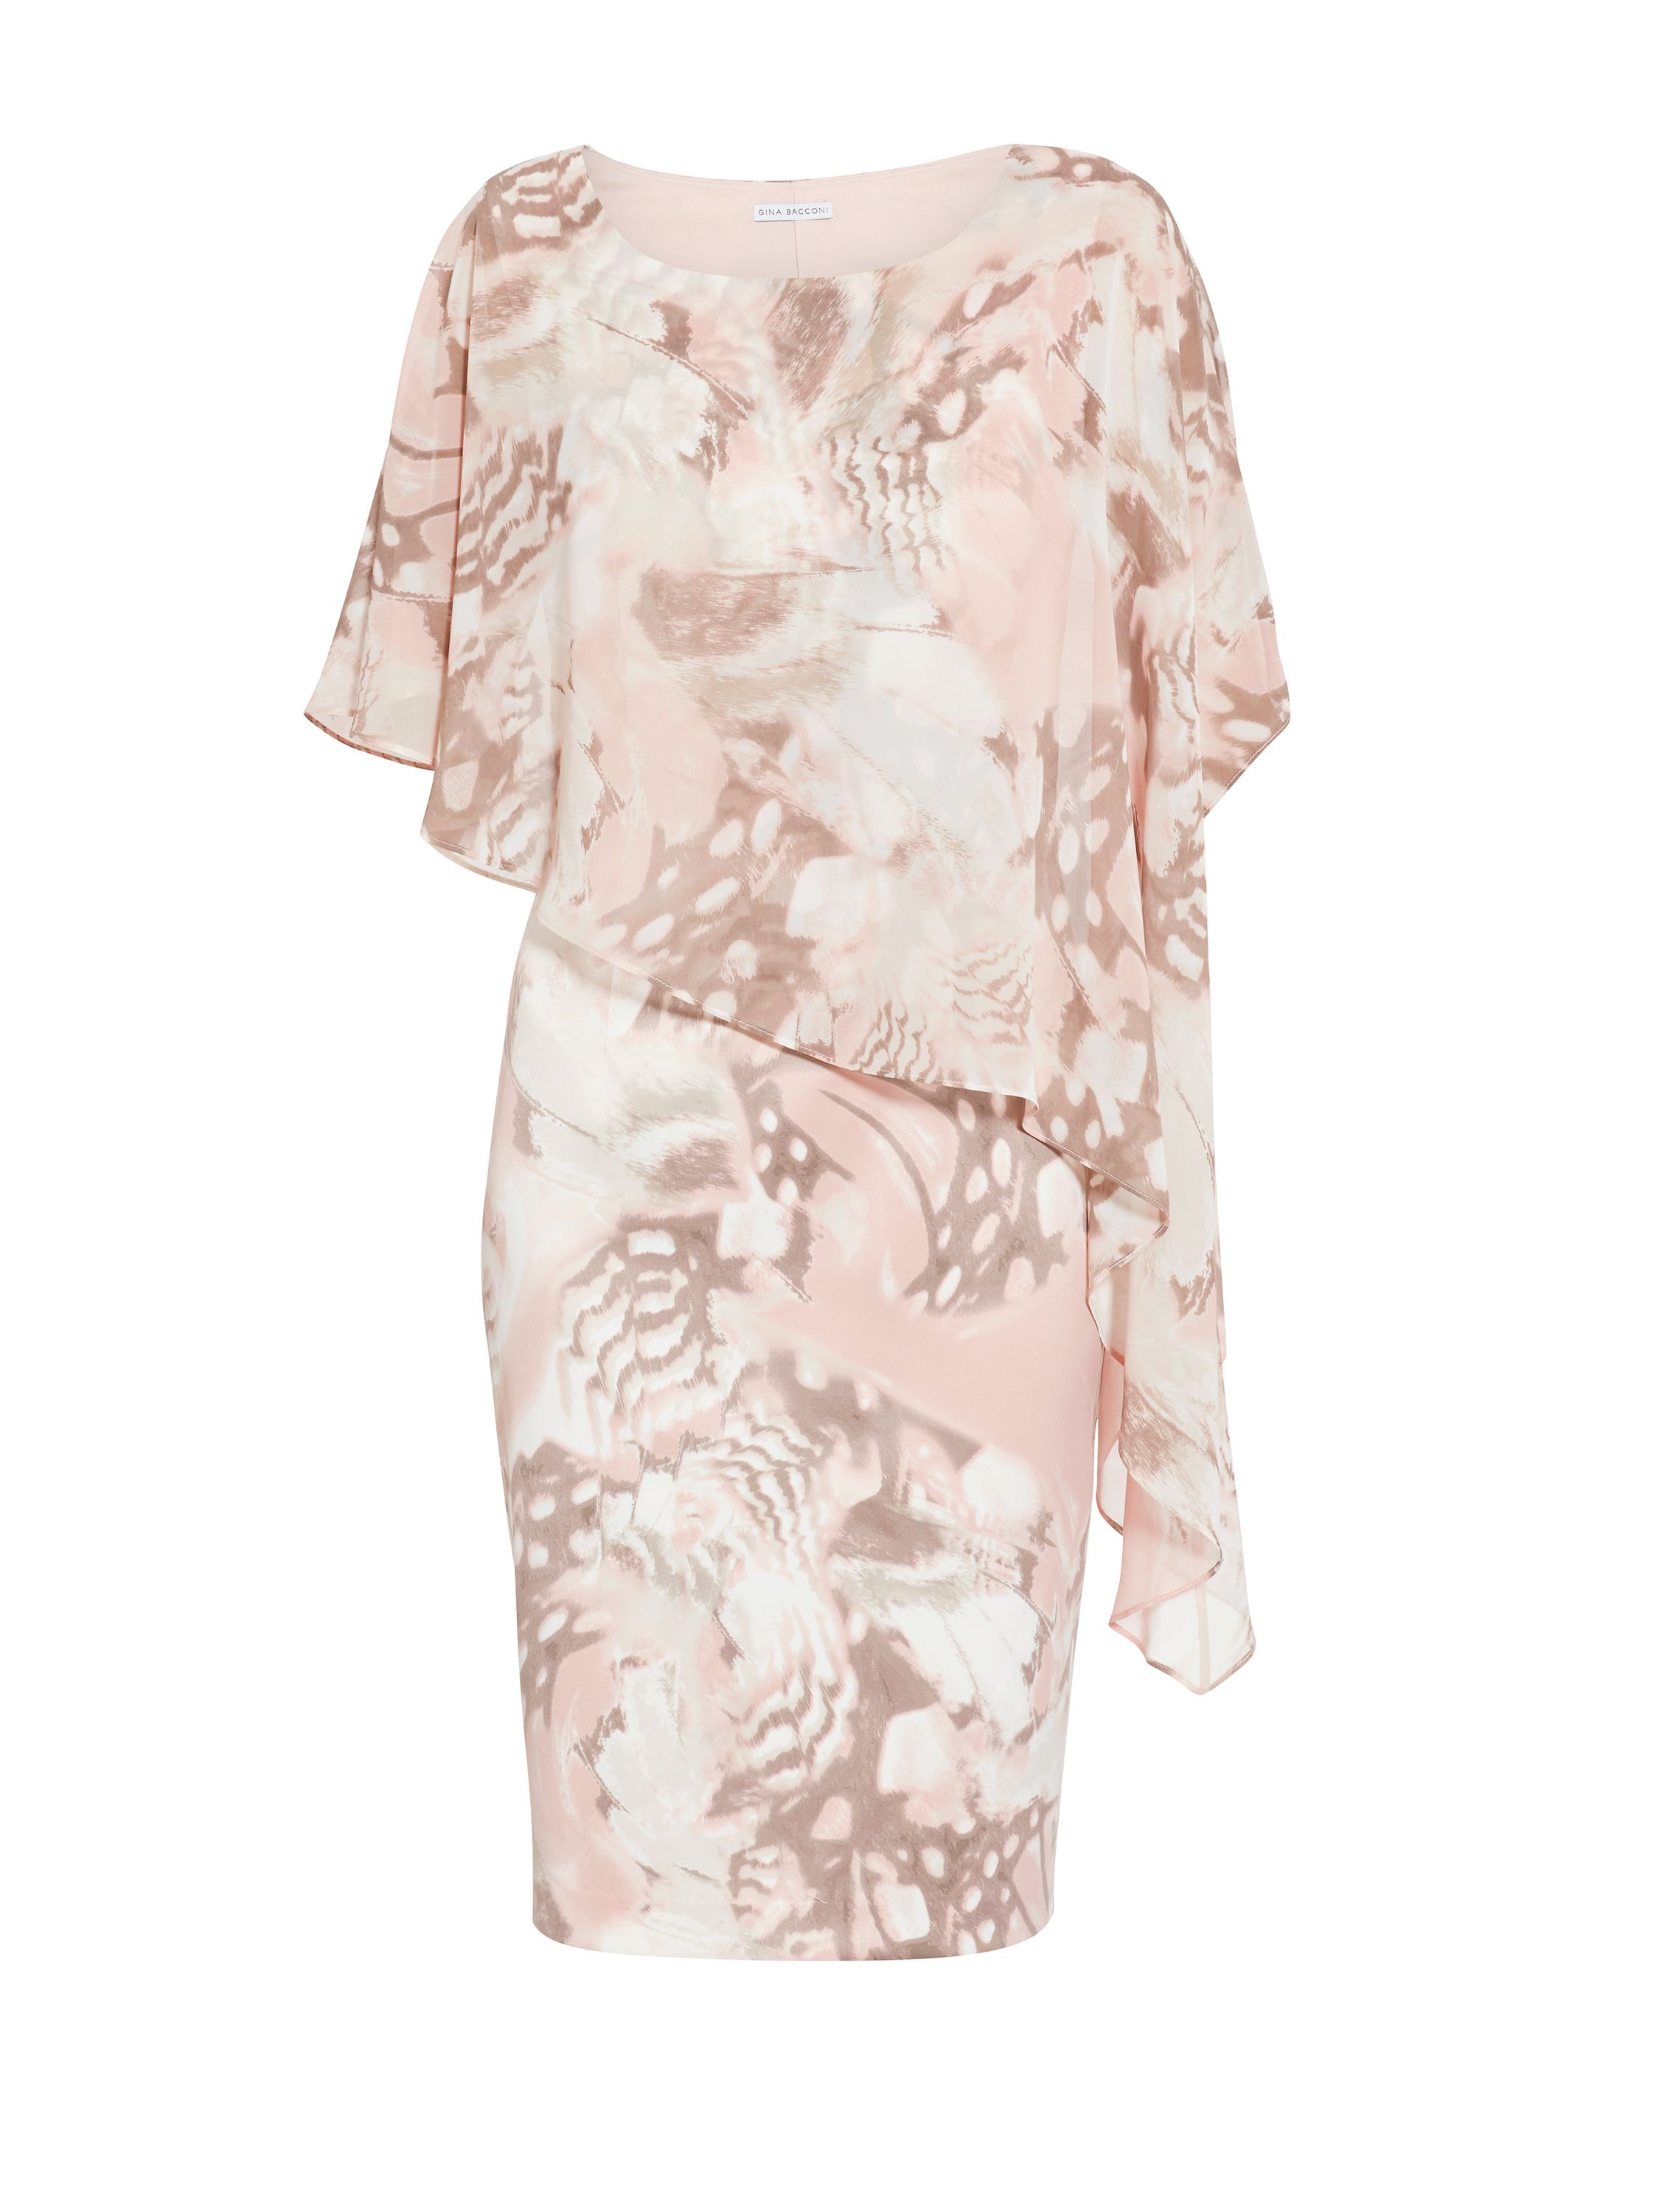 Gina Bacconi Satin Print Dress And Chiffon Cape, White